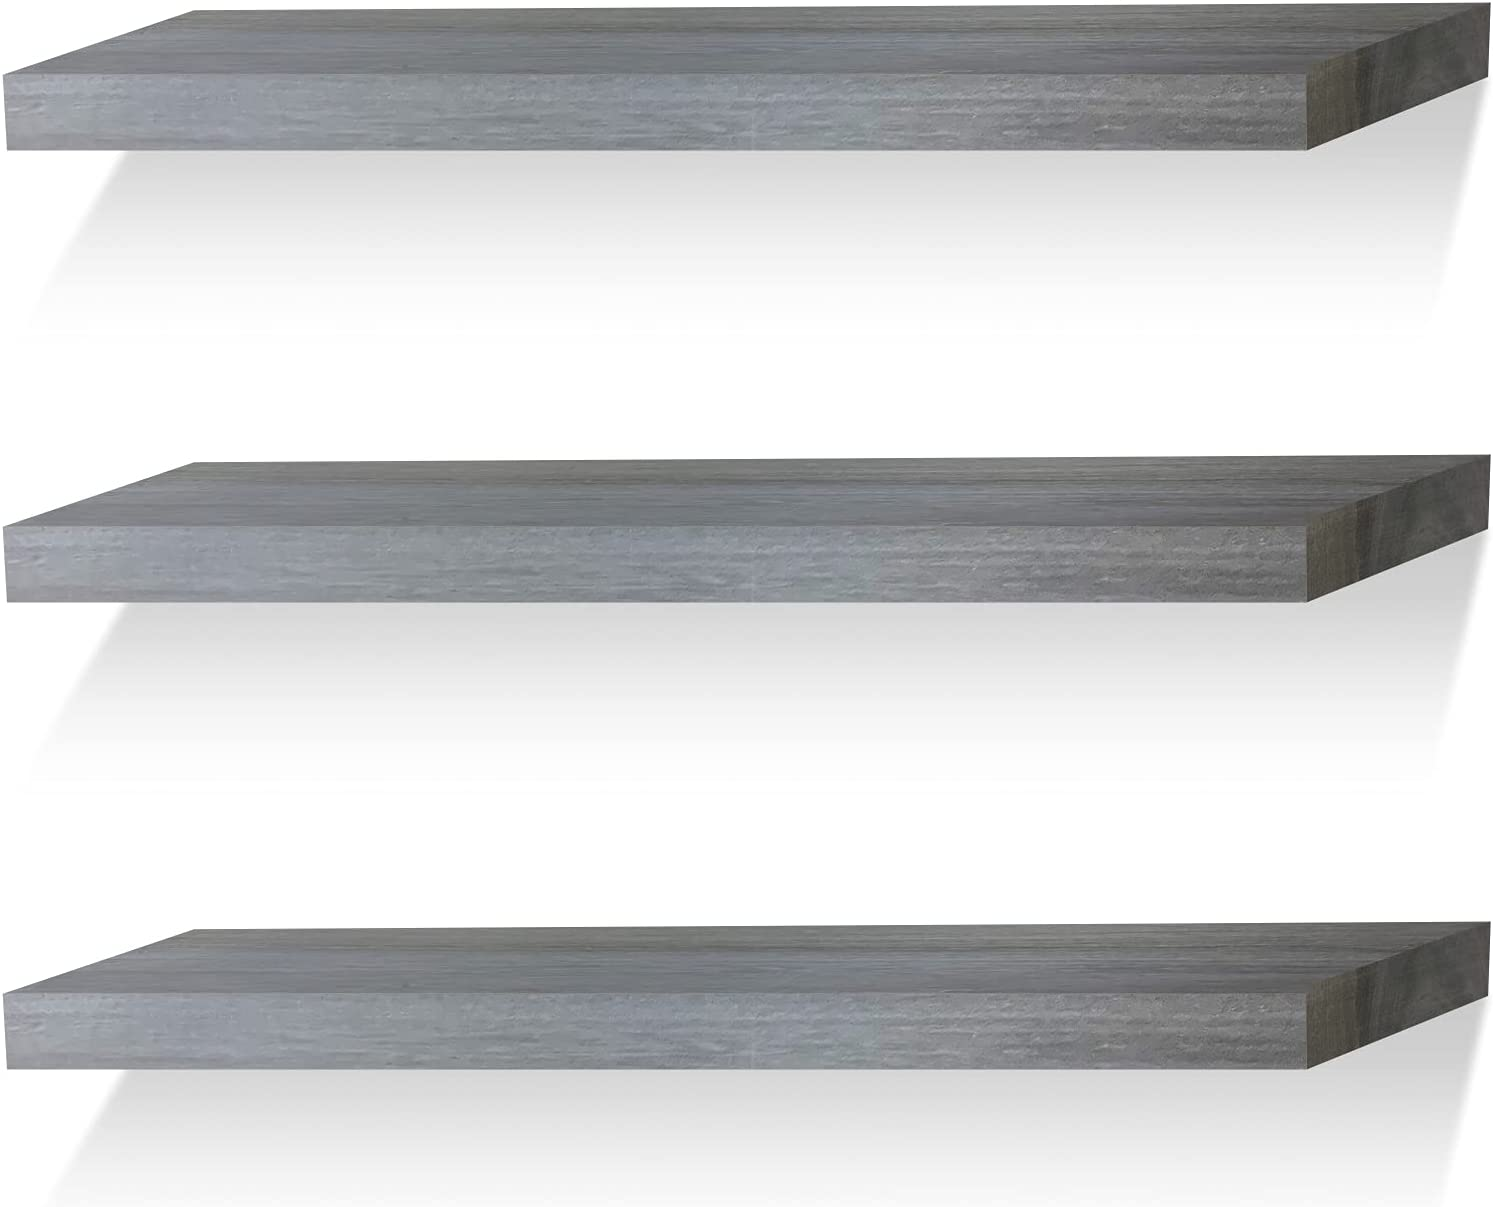 Floating Shelves Wall Mounted Shelf Solid Wood for Bathroom Kitchen Bedroom Rustic Decor Set of 3, Weathered Gray Wall Shelves